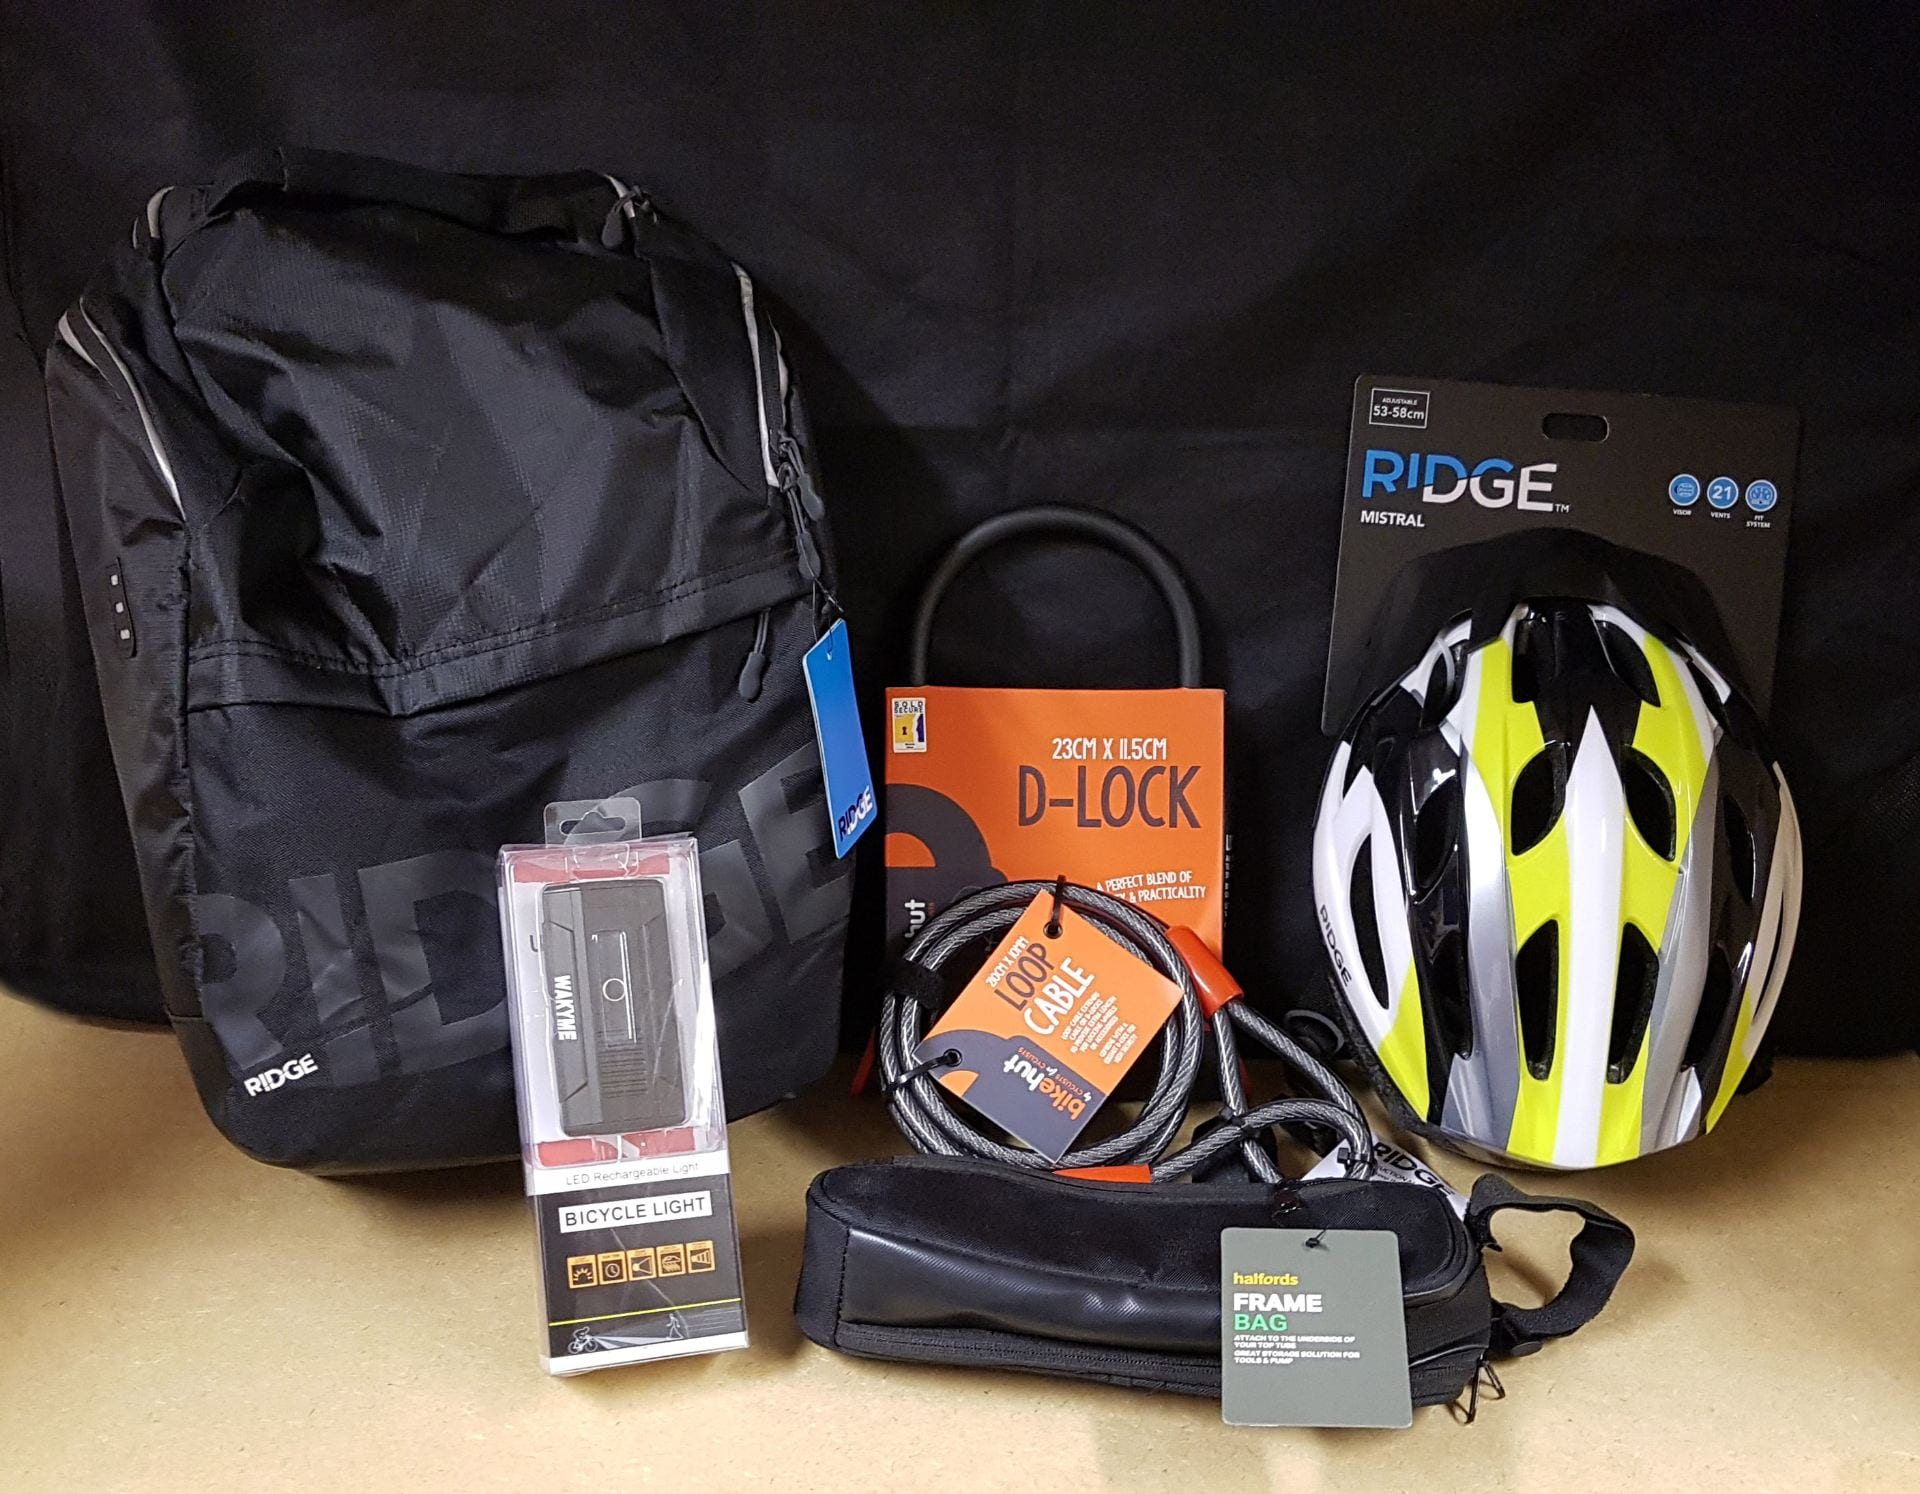 Image of cycling equipment, including a helmet, lock, lights and bag